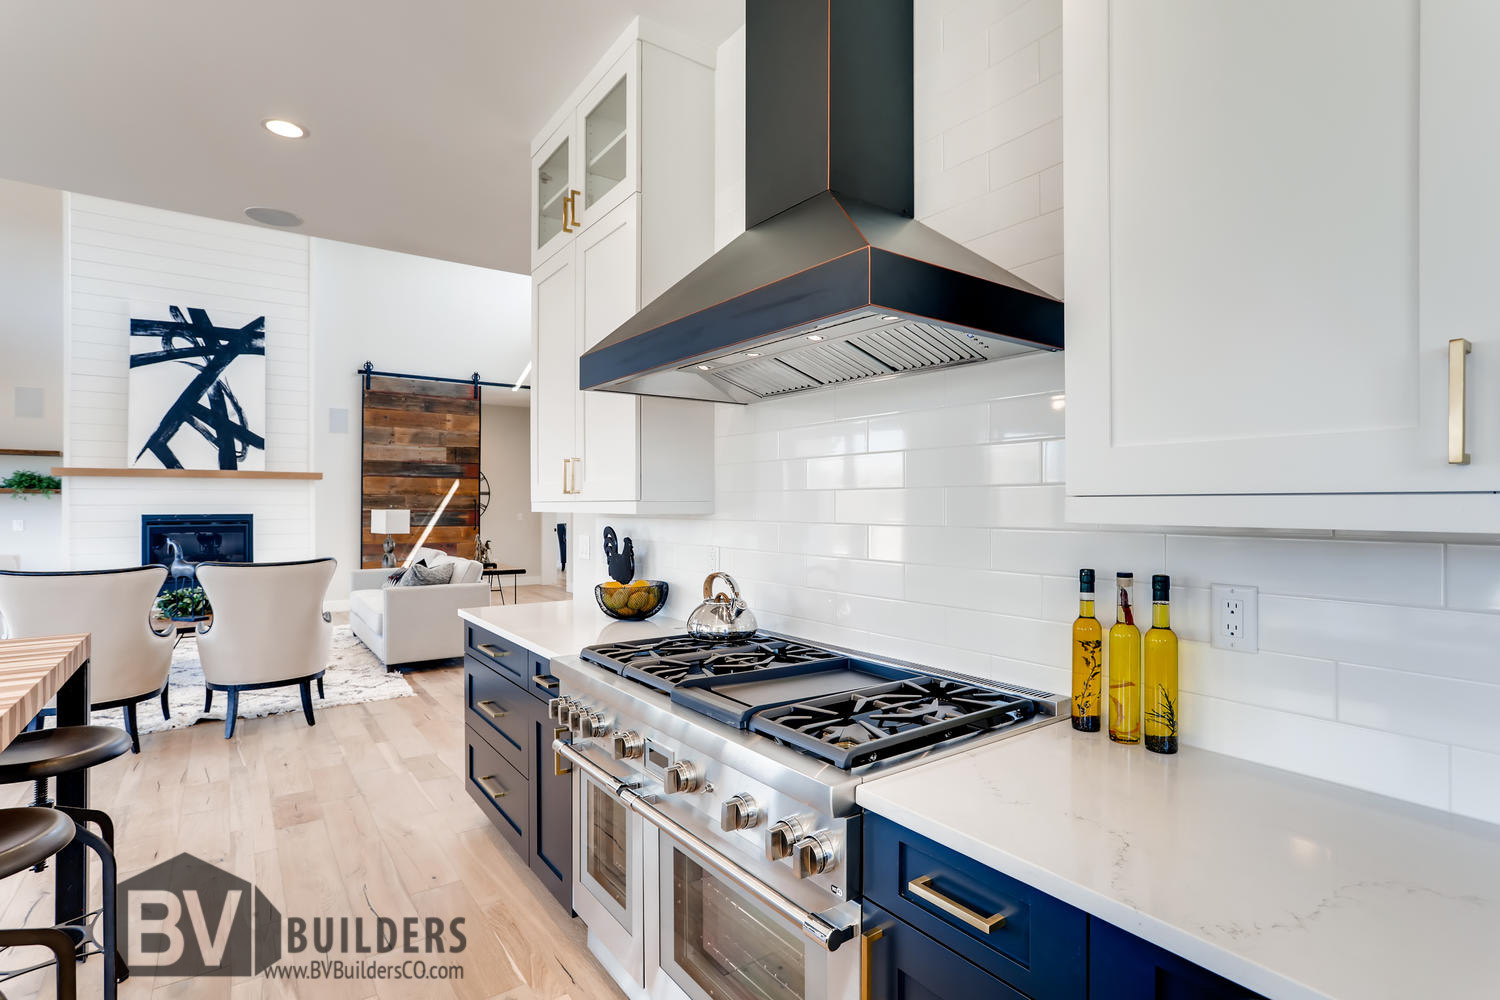 Modern farmhouse kitchen with Thermador range and white subway tile backsplash